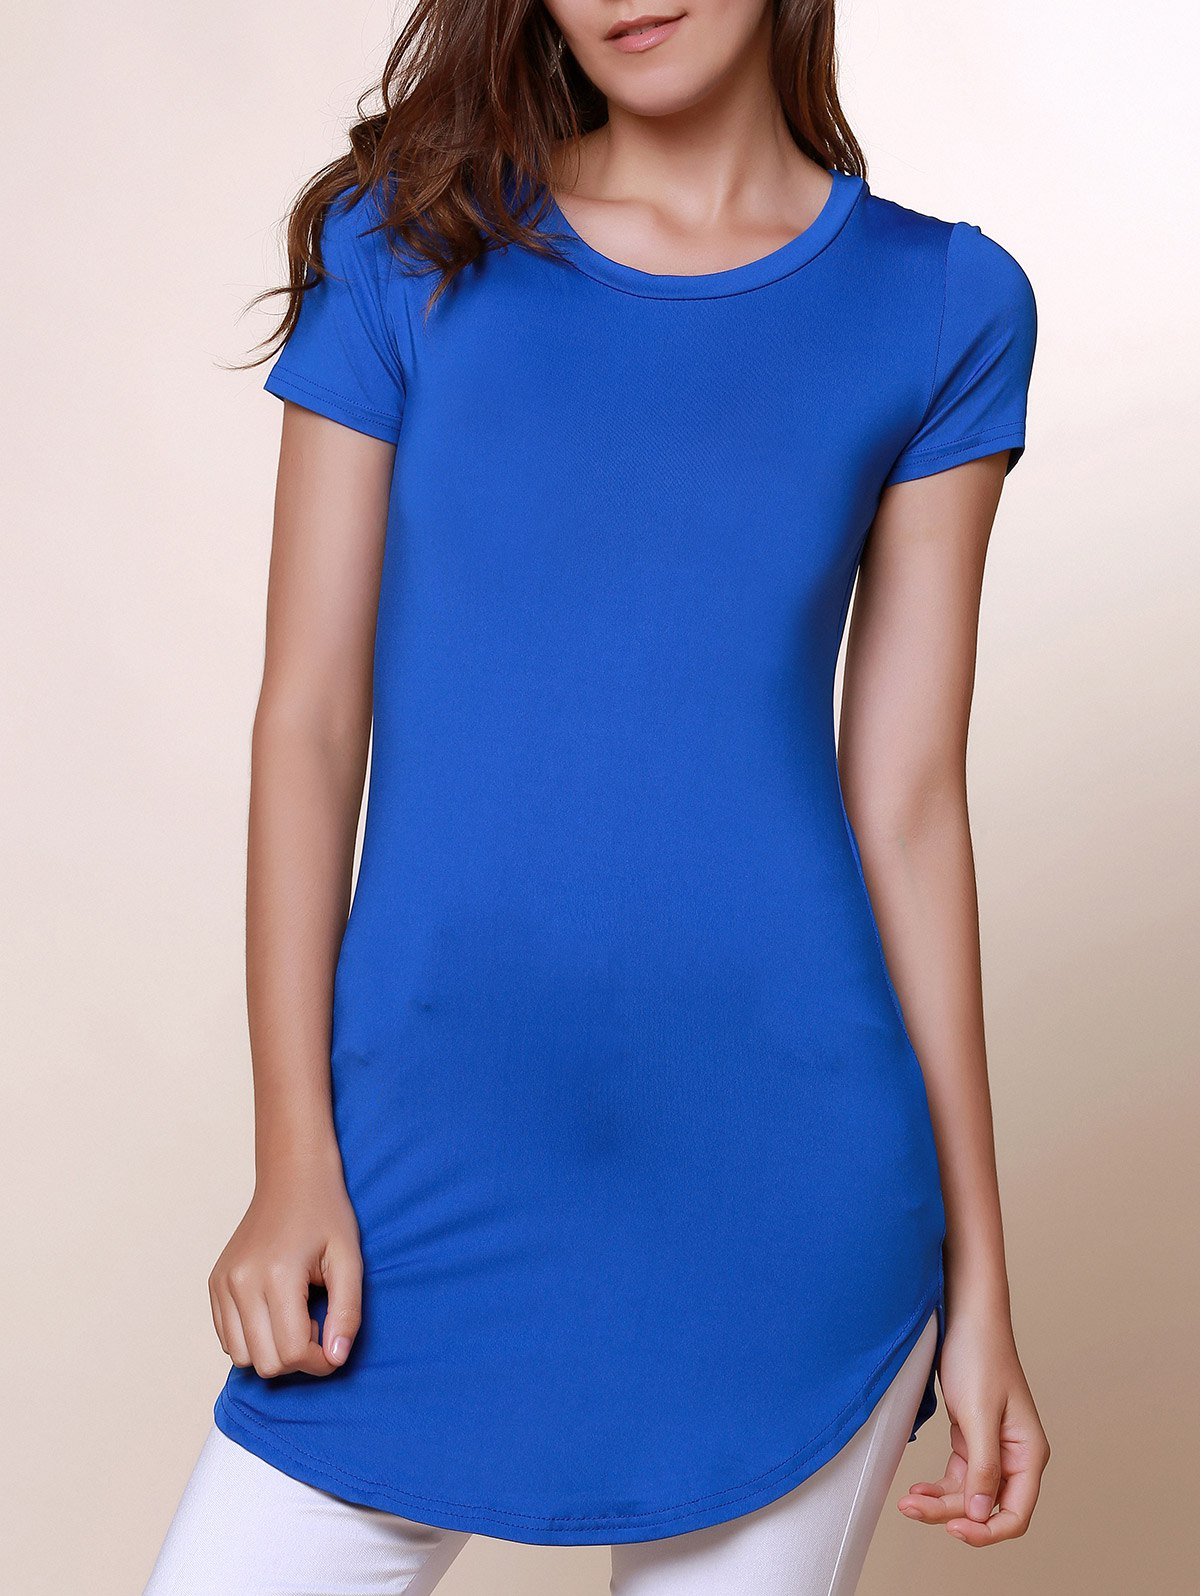 Round Neck Short Sleeve Solid Color Asymmetrical T Shirt 134136602